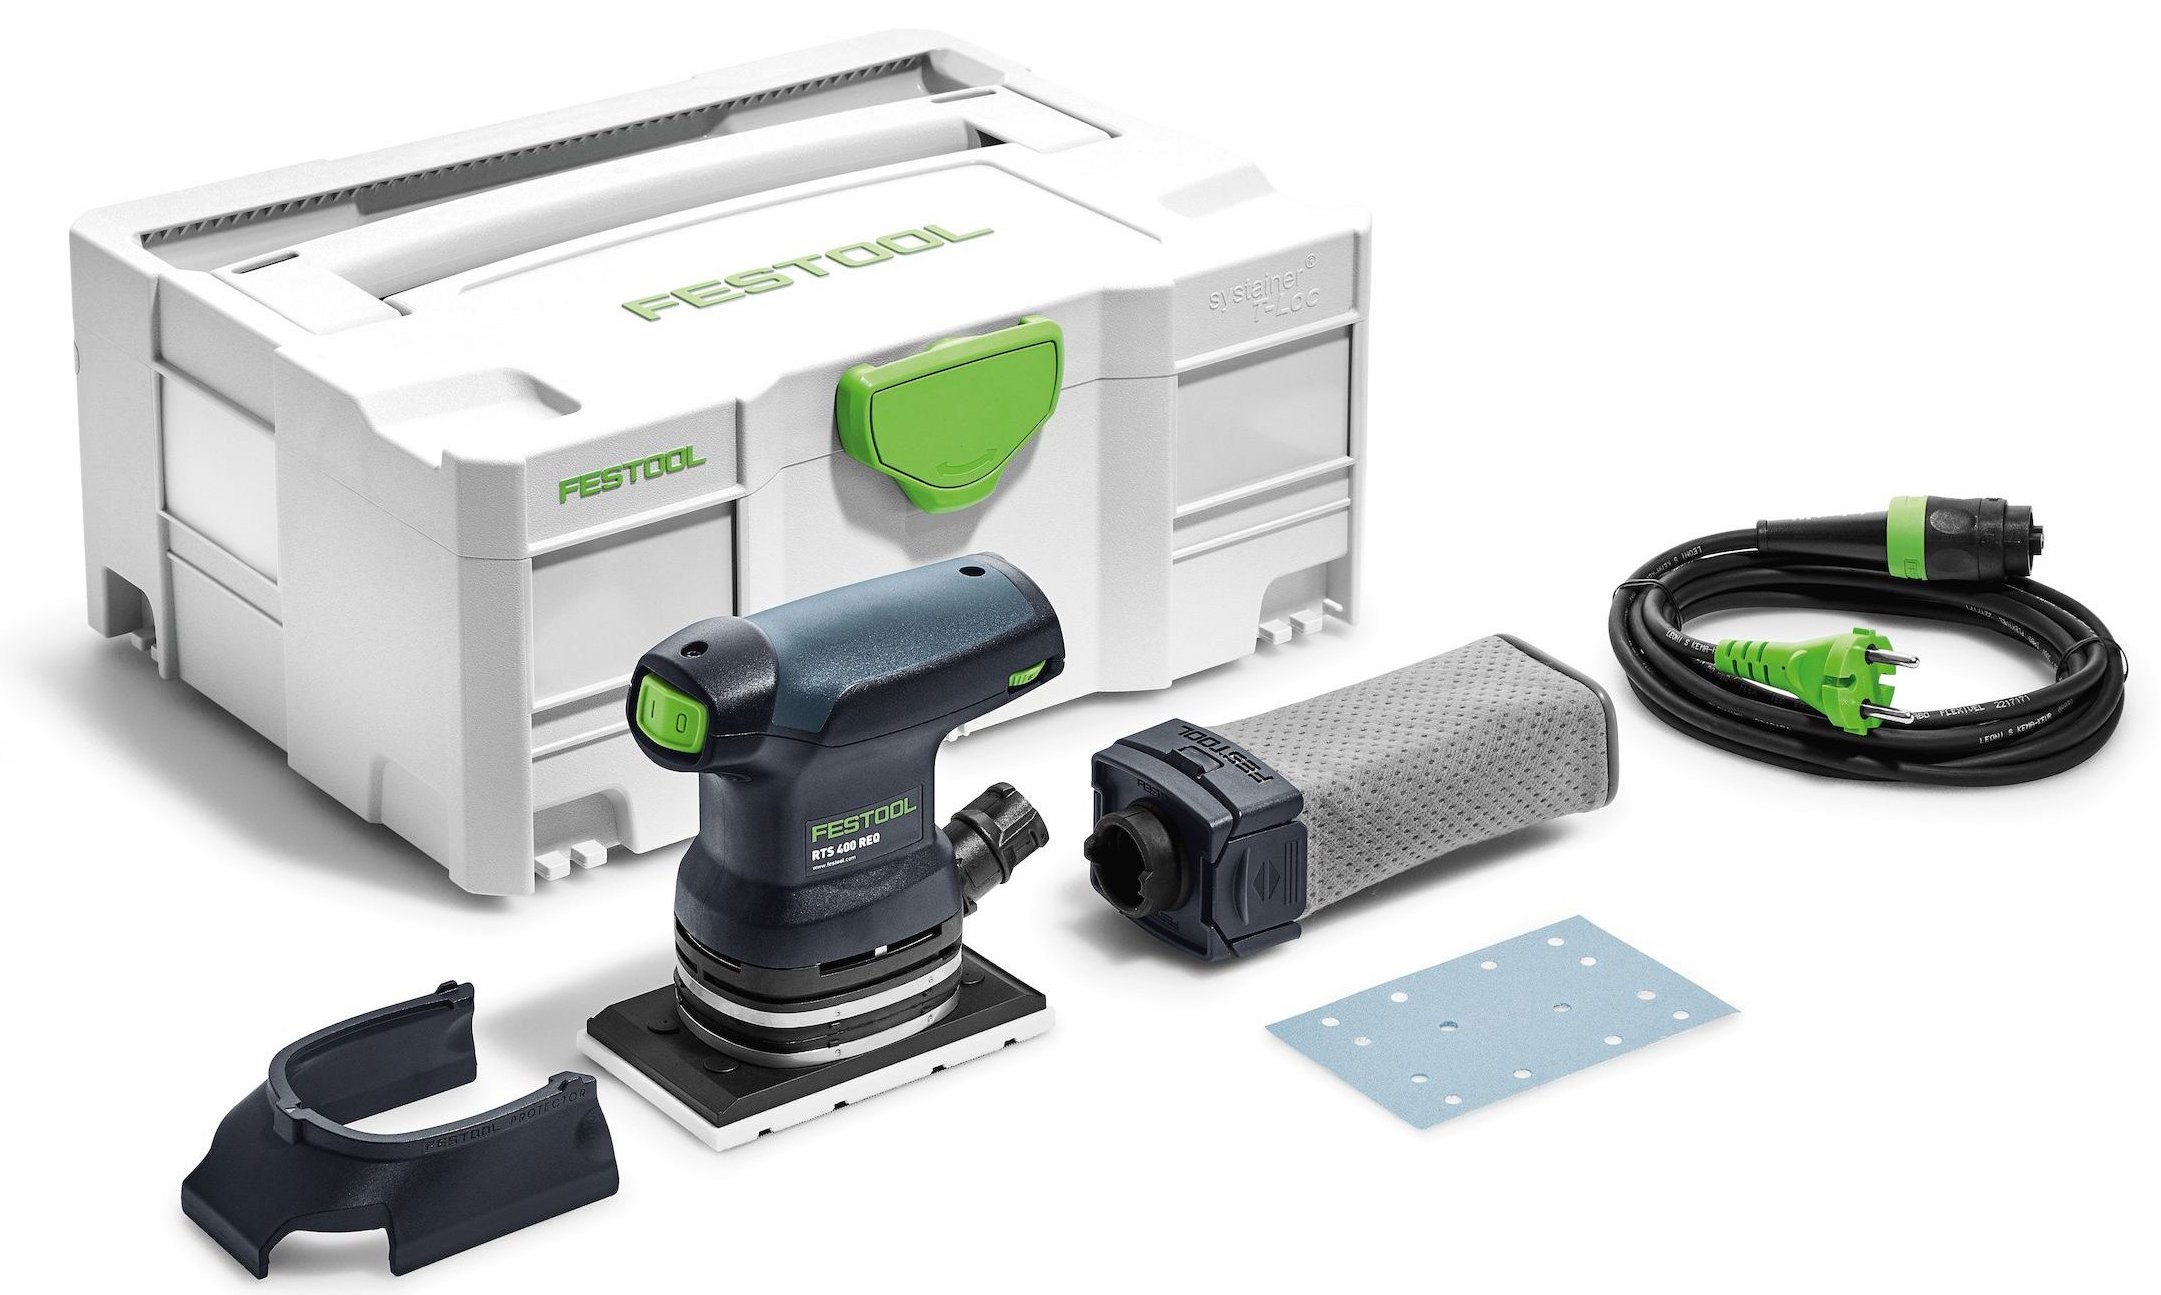 Festool rts 400 req plus vlakschuurmachine in systainer 574634